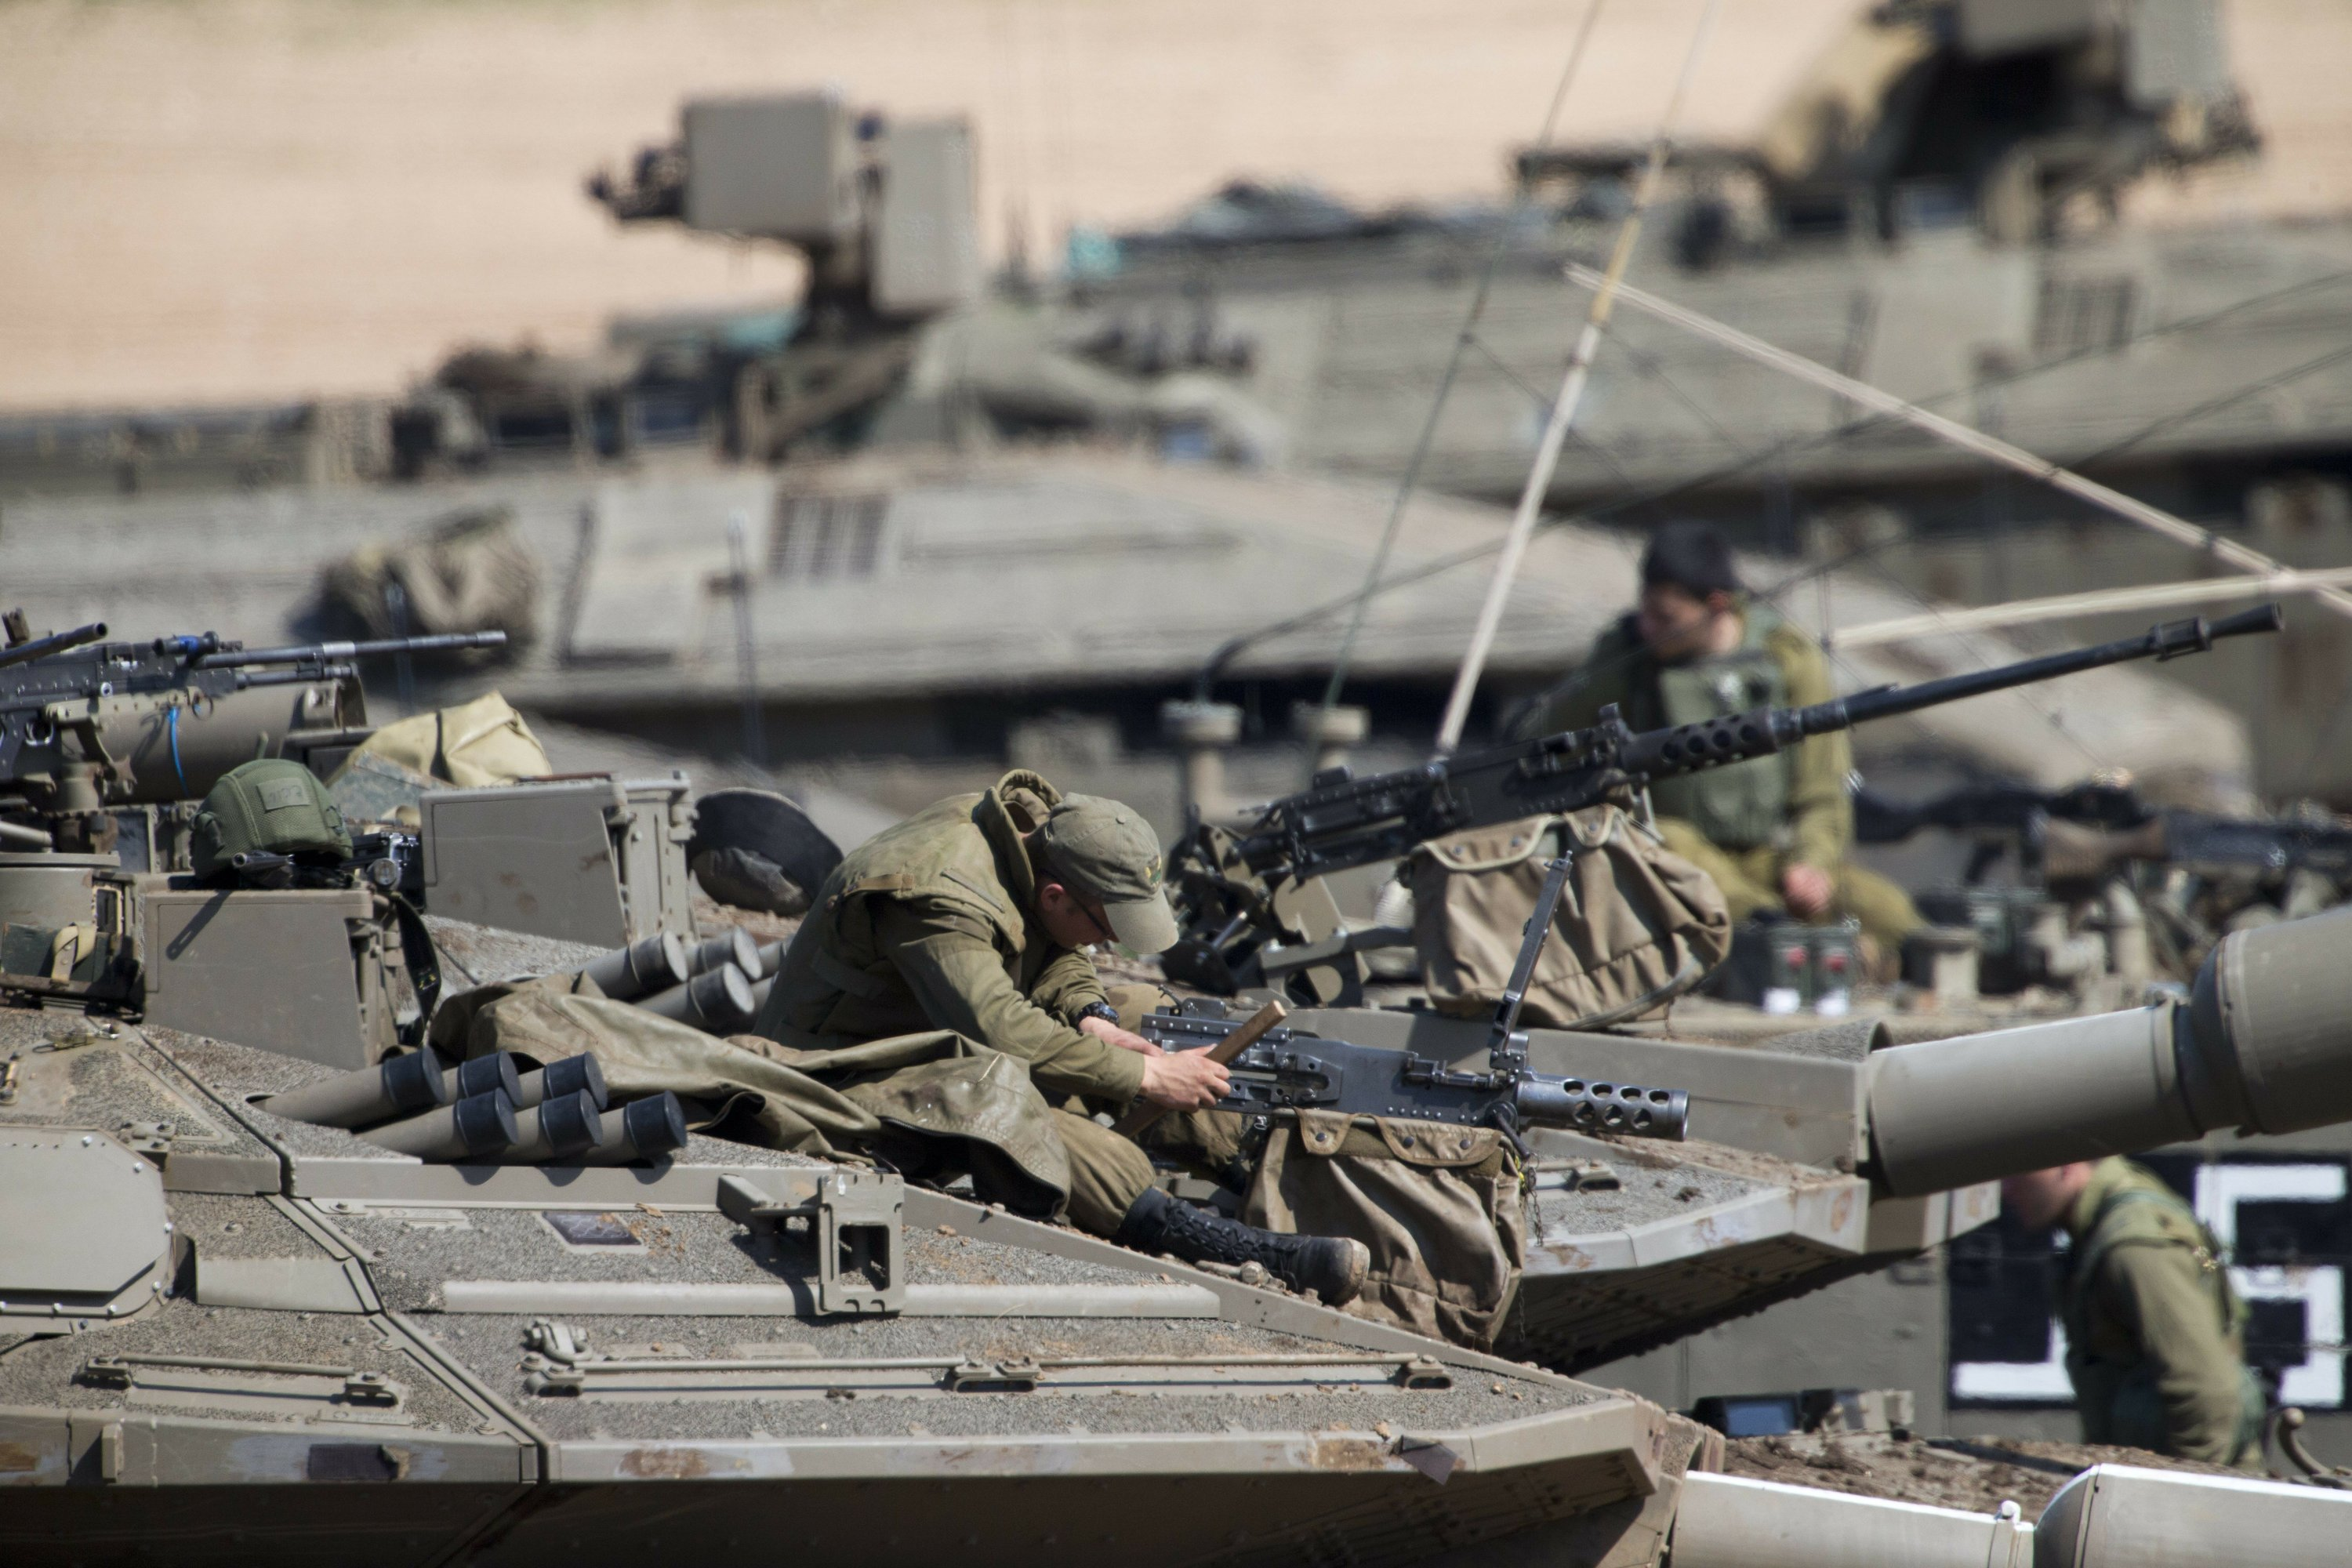 Israeli PM consults with military after Gaza violence